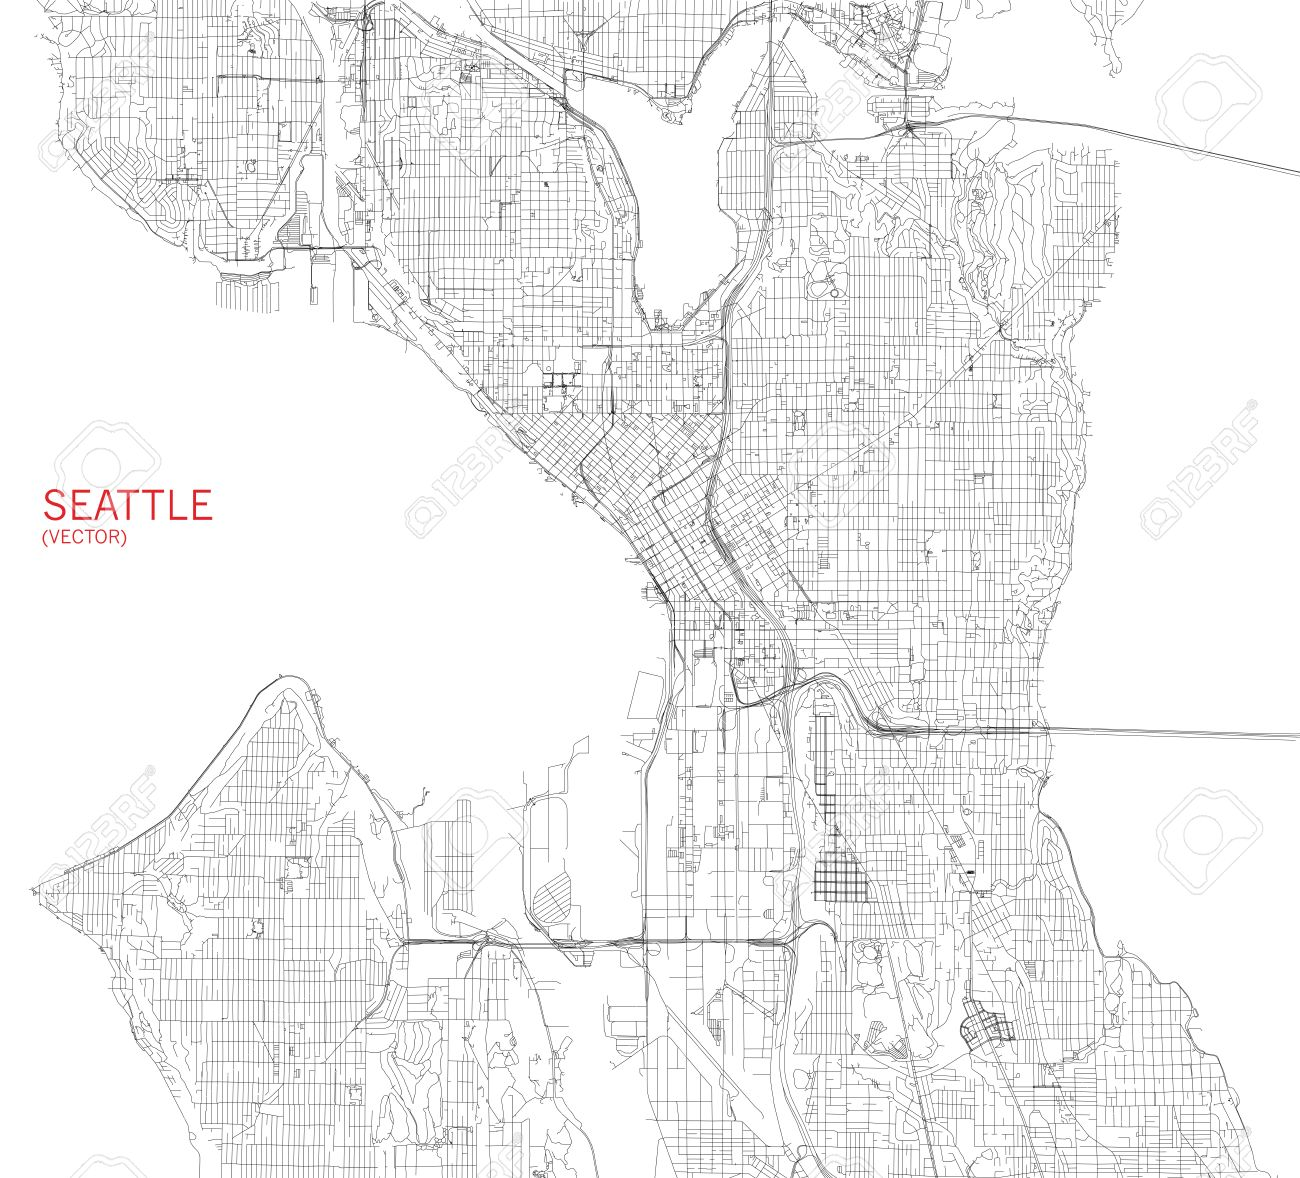 Map of Seattle, satellite view, streets and highways, USa - 56342169